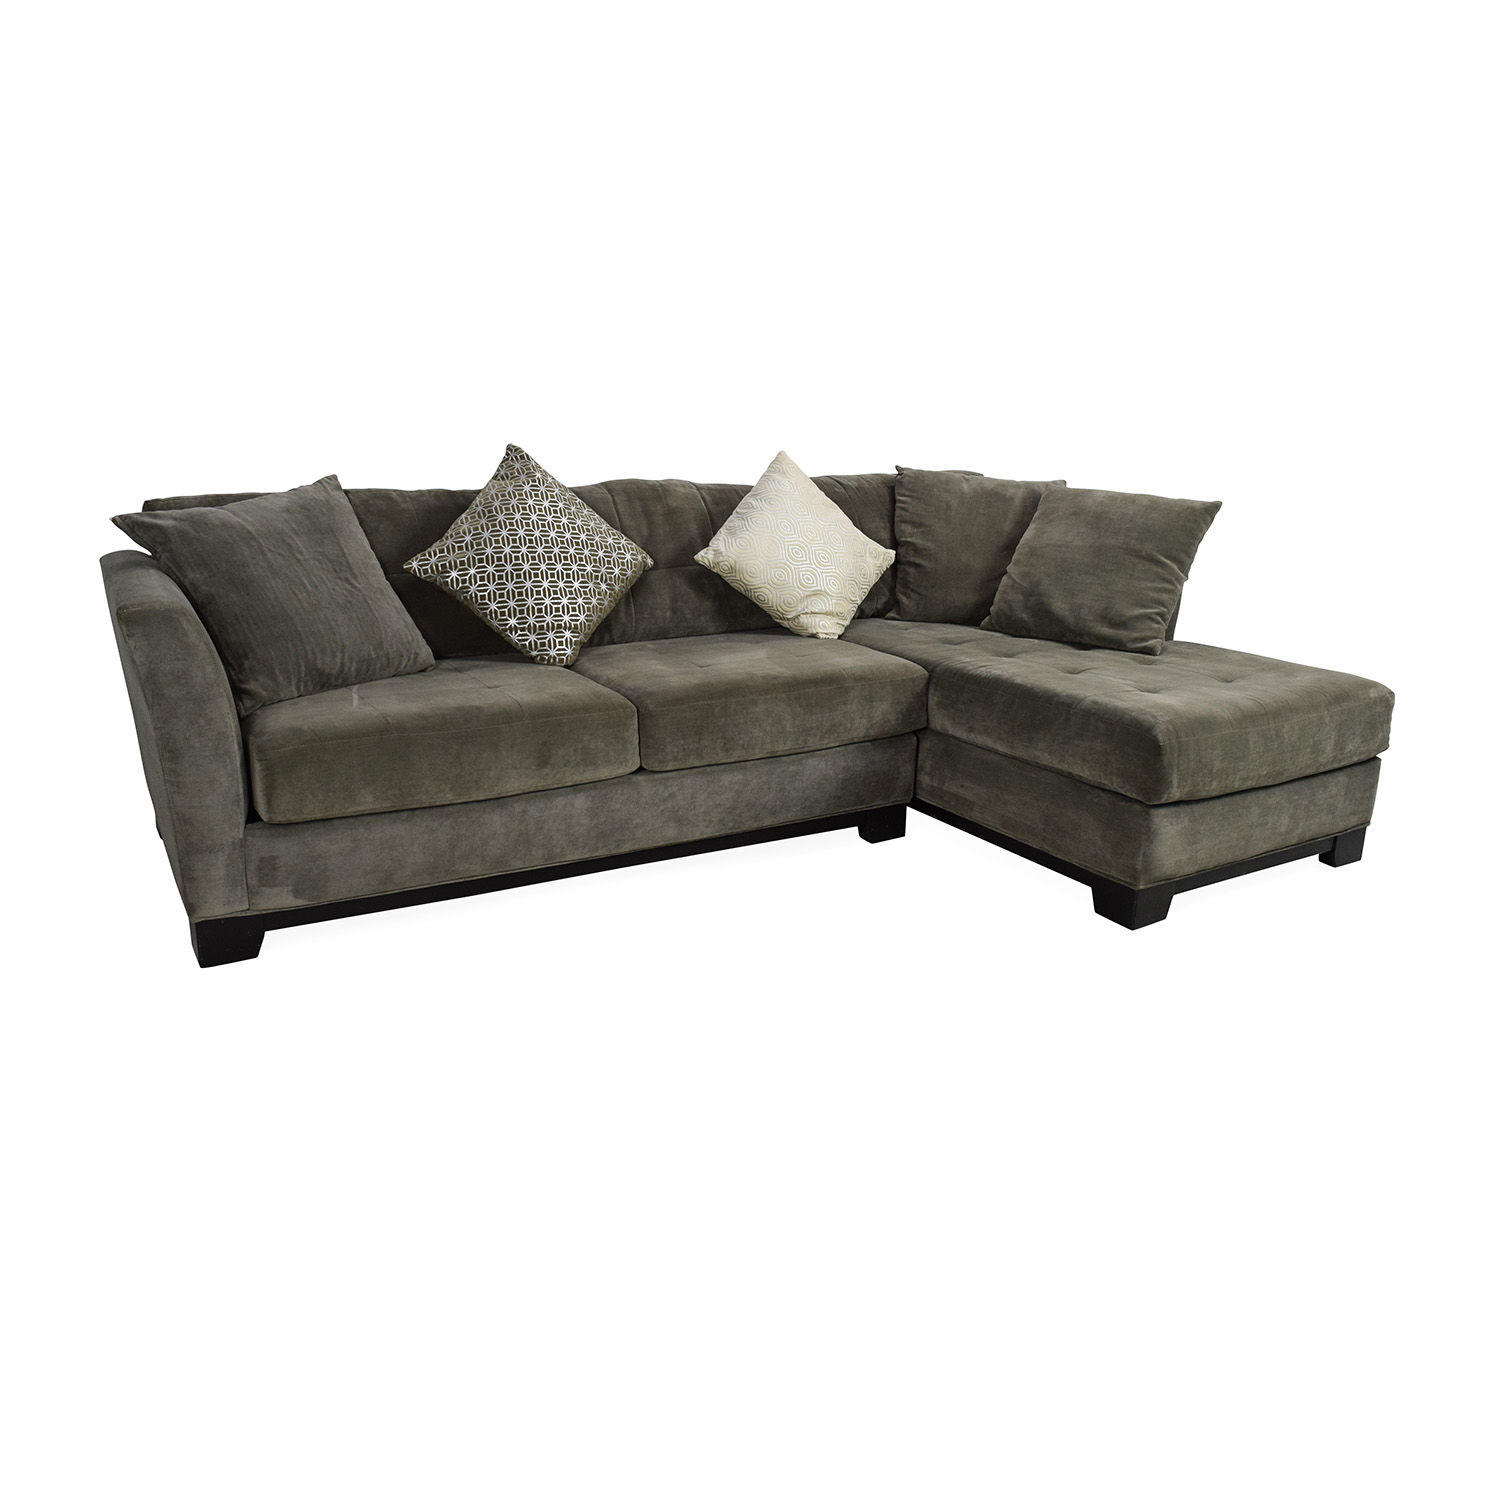 Elegant Macys Kenton Sofa Pattern Superb